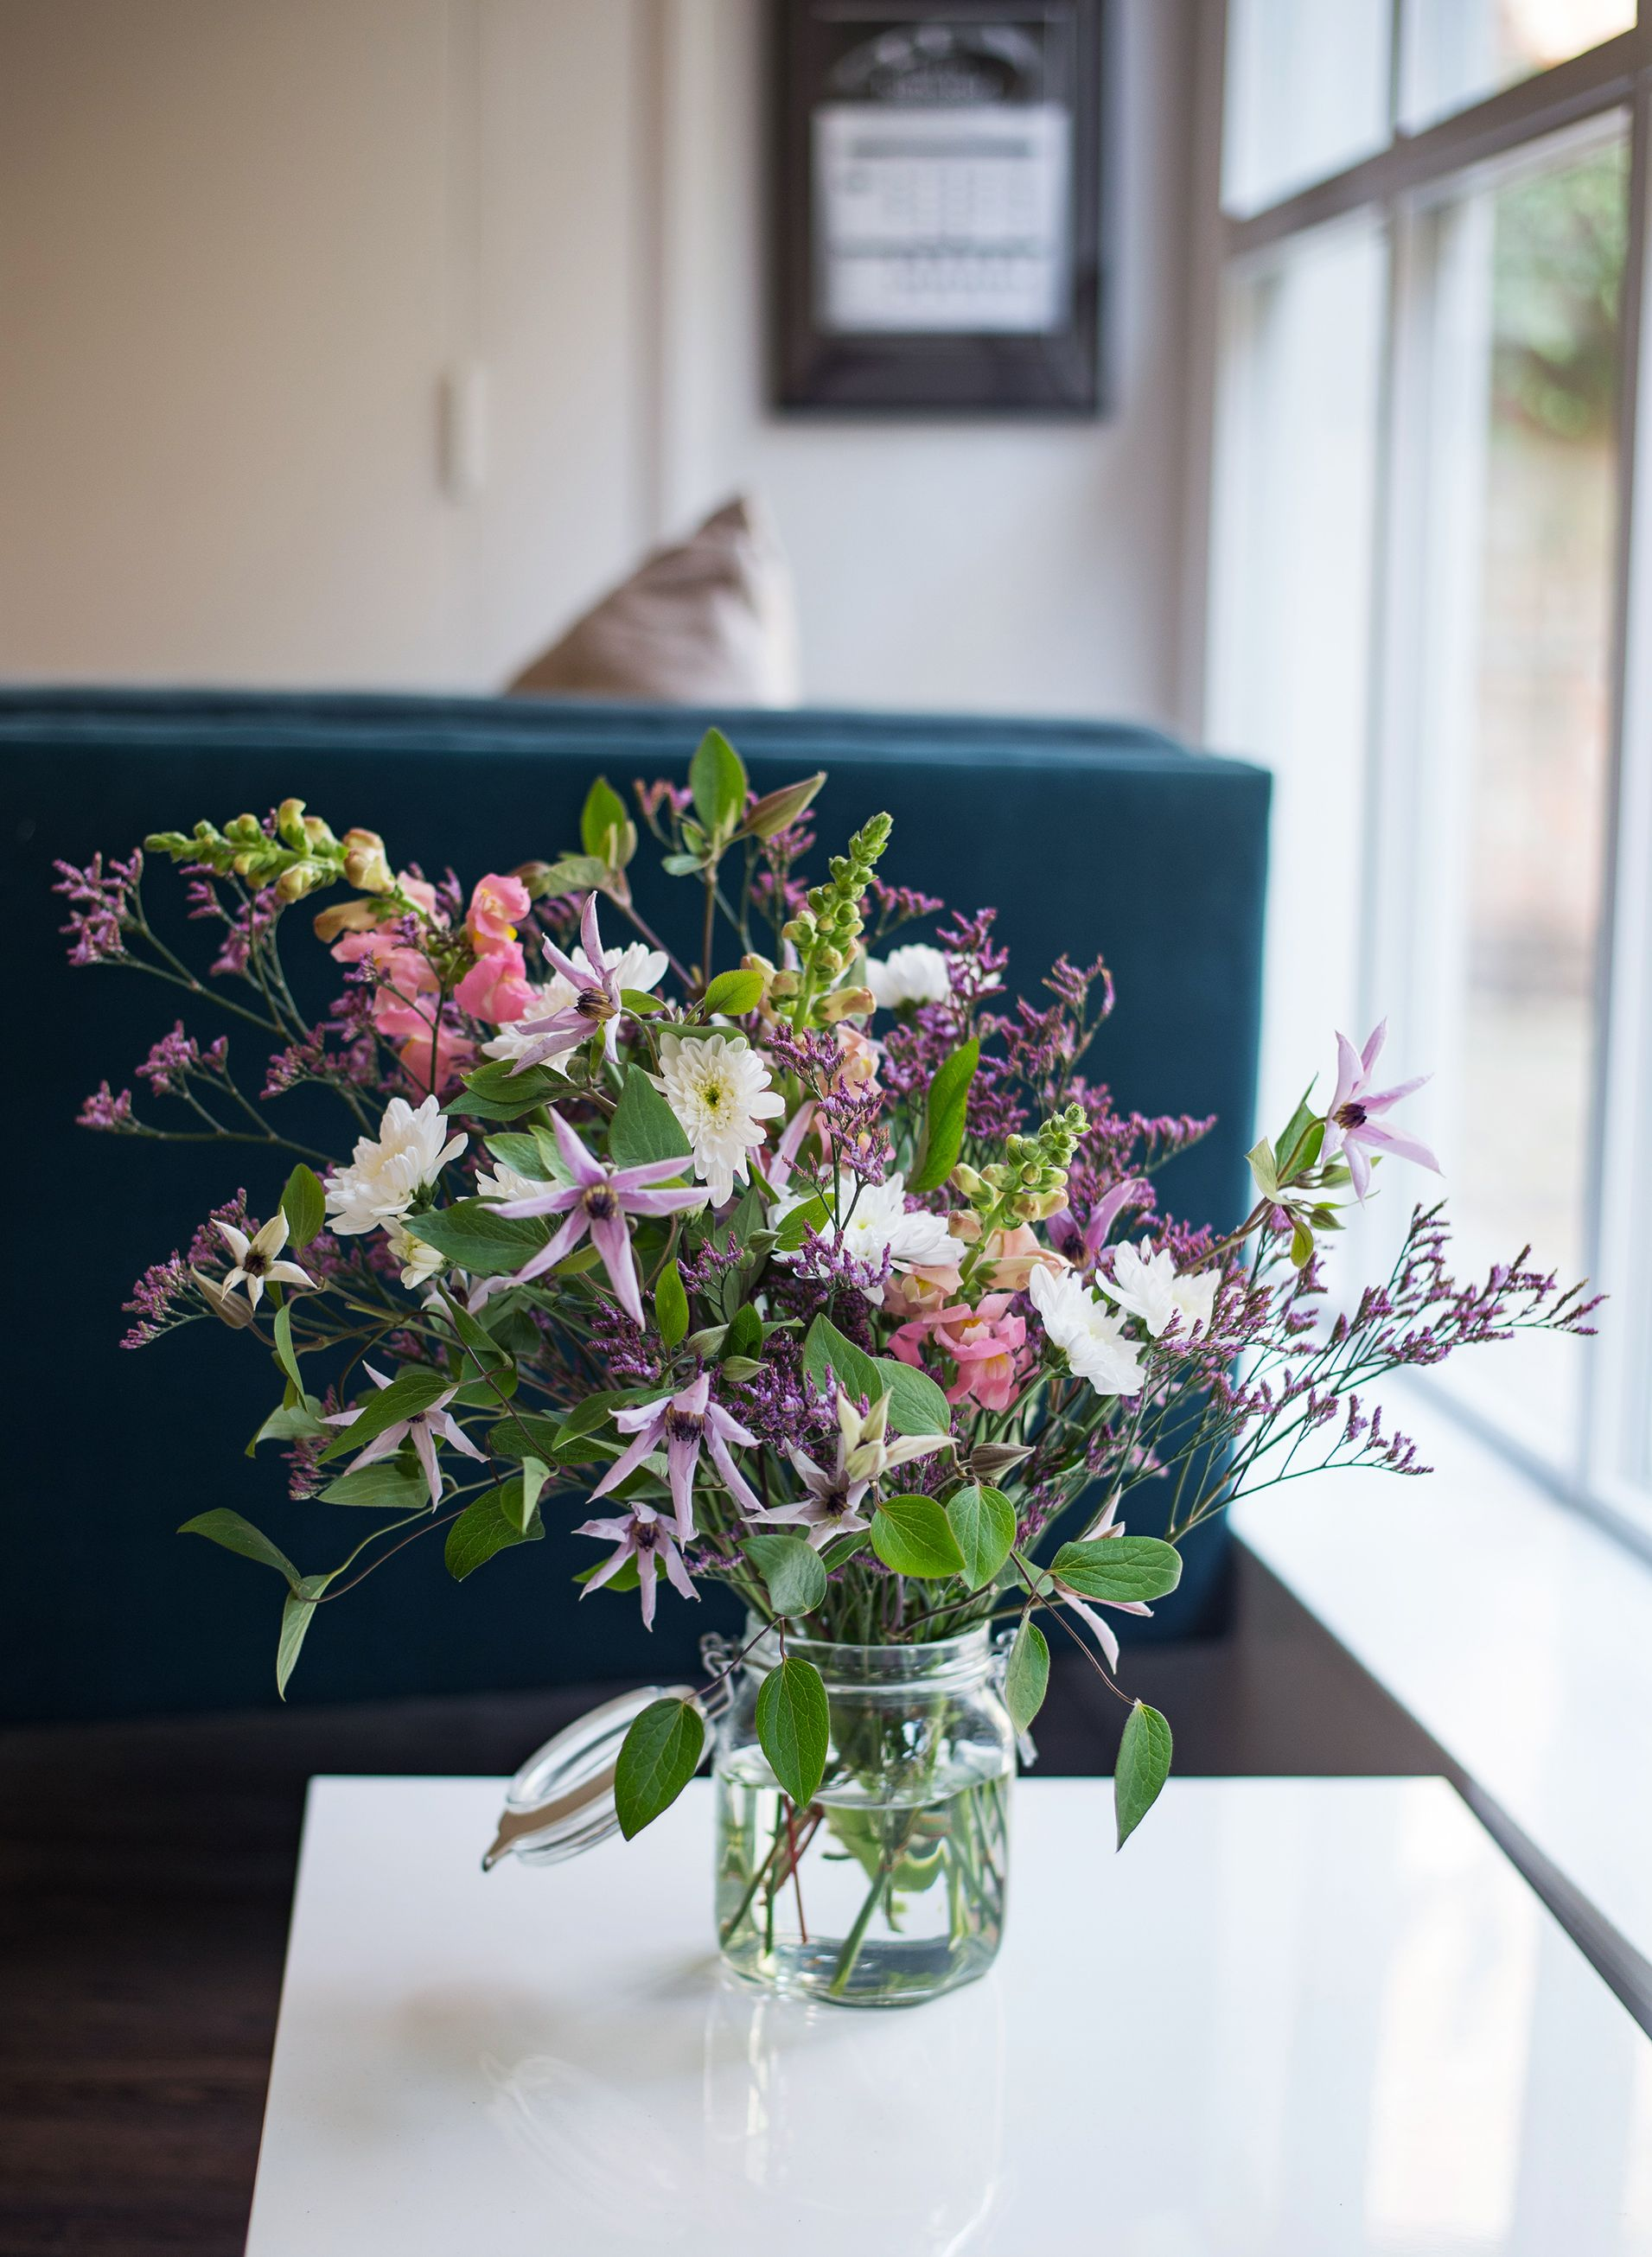 Starry clematis flowers and snapdragons mixed with purple limonium